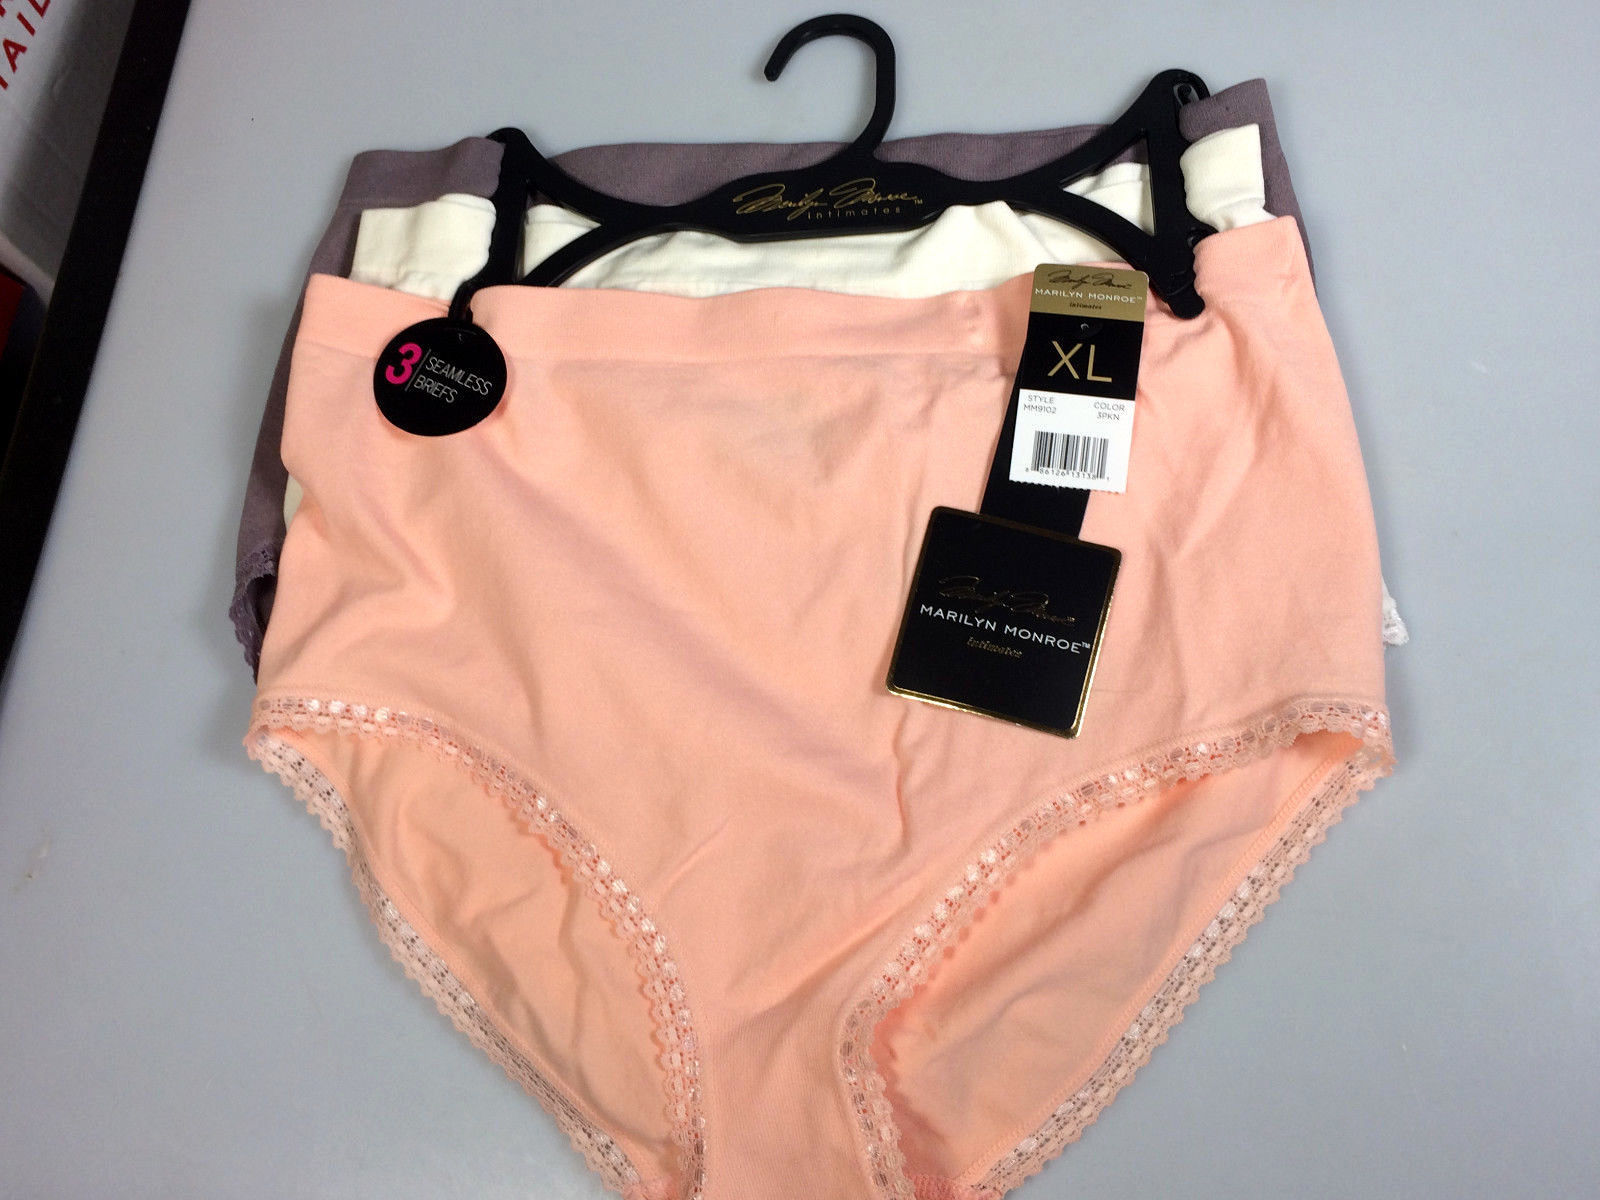 9978b4d24edc Womens Panties Xl, Marilyn Monroe Seamless and 50 similar items. S l1600